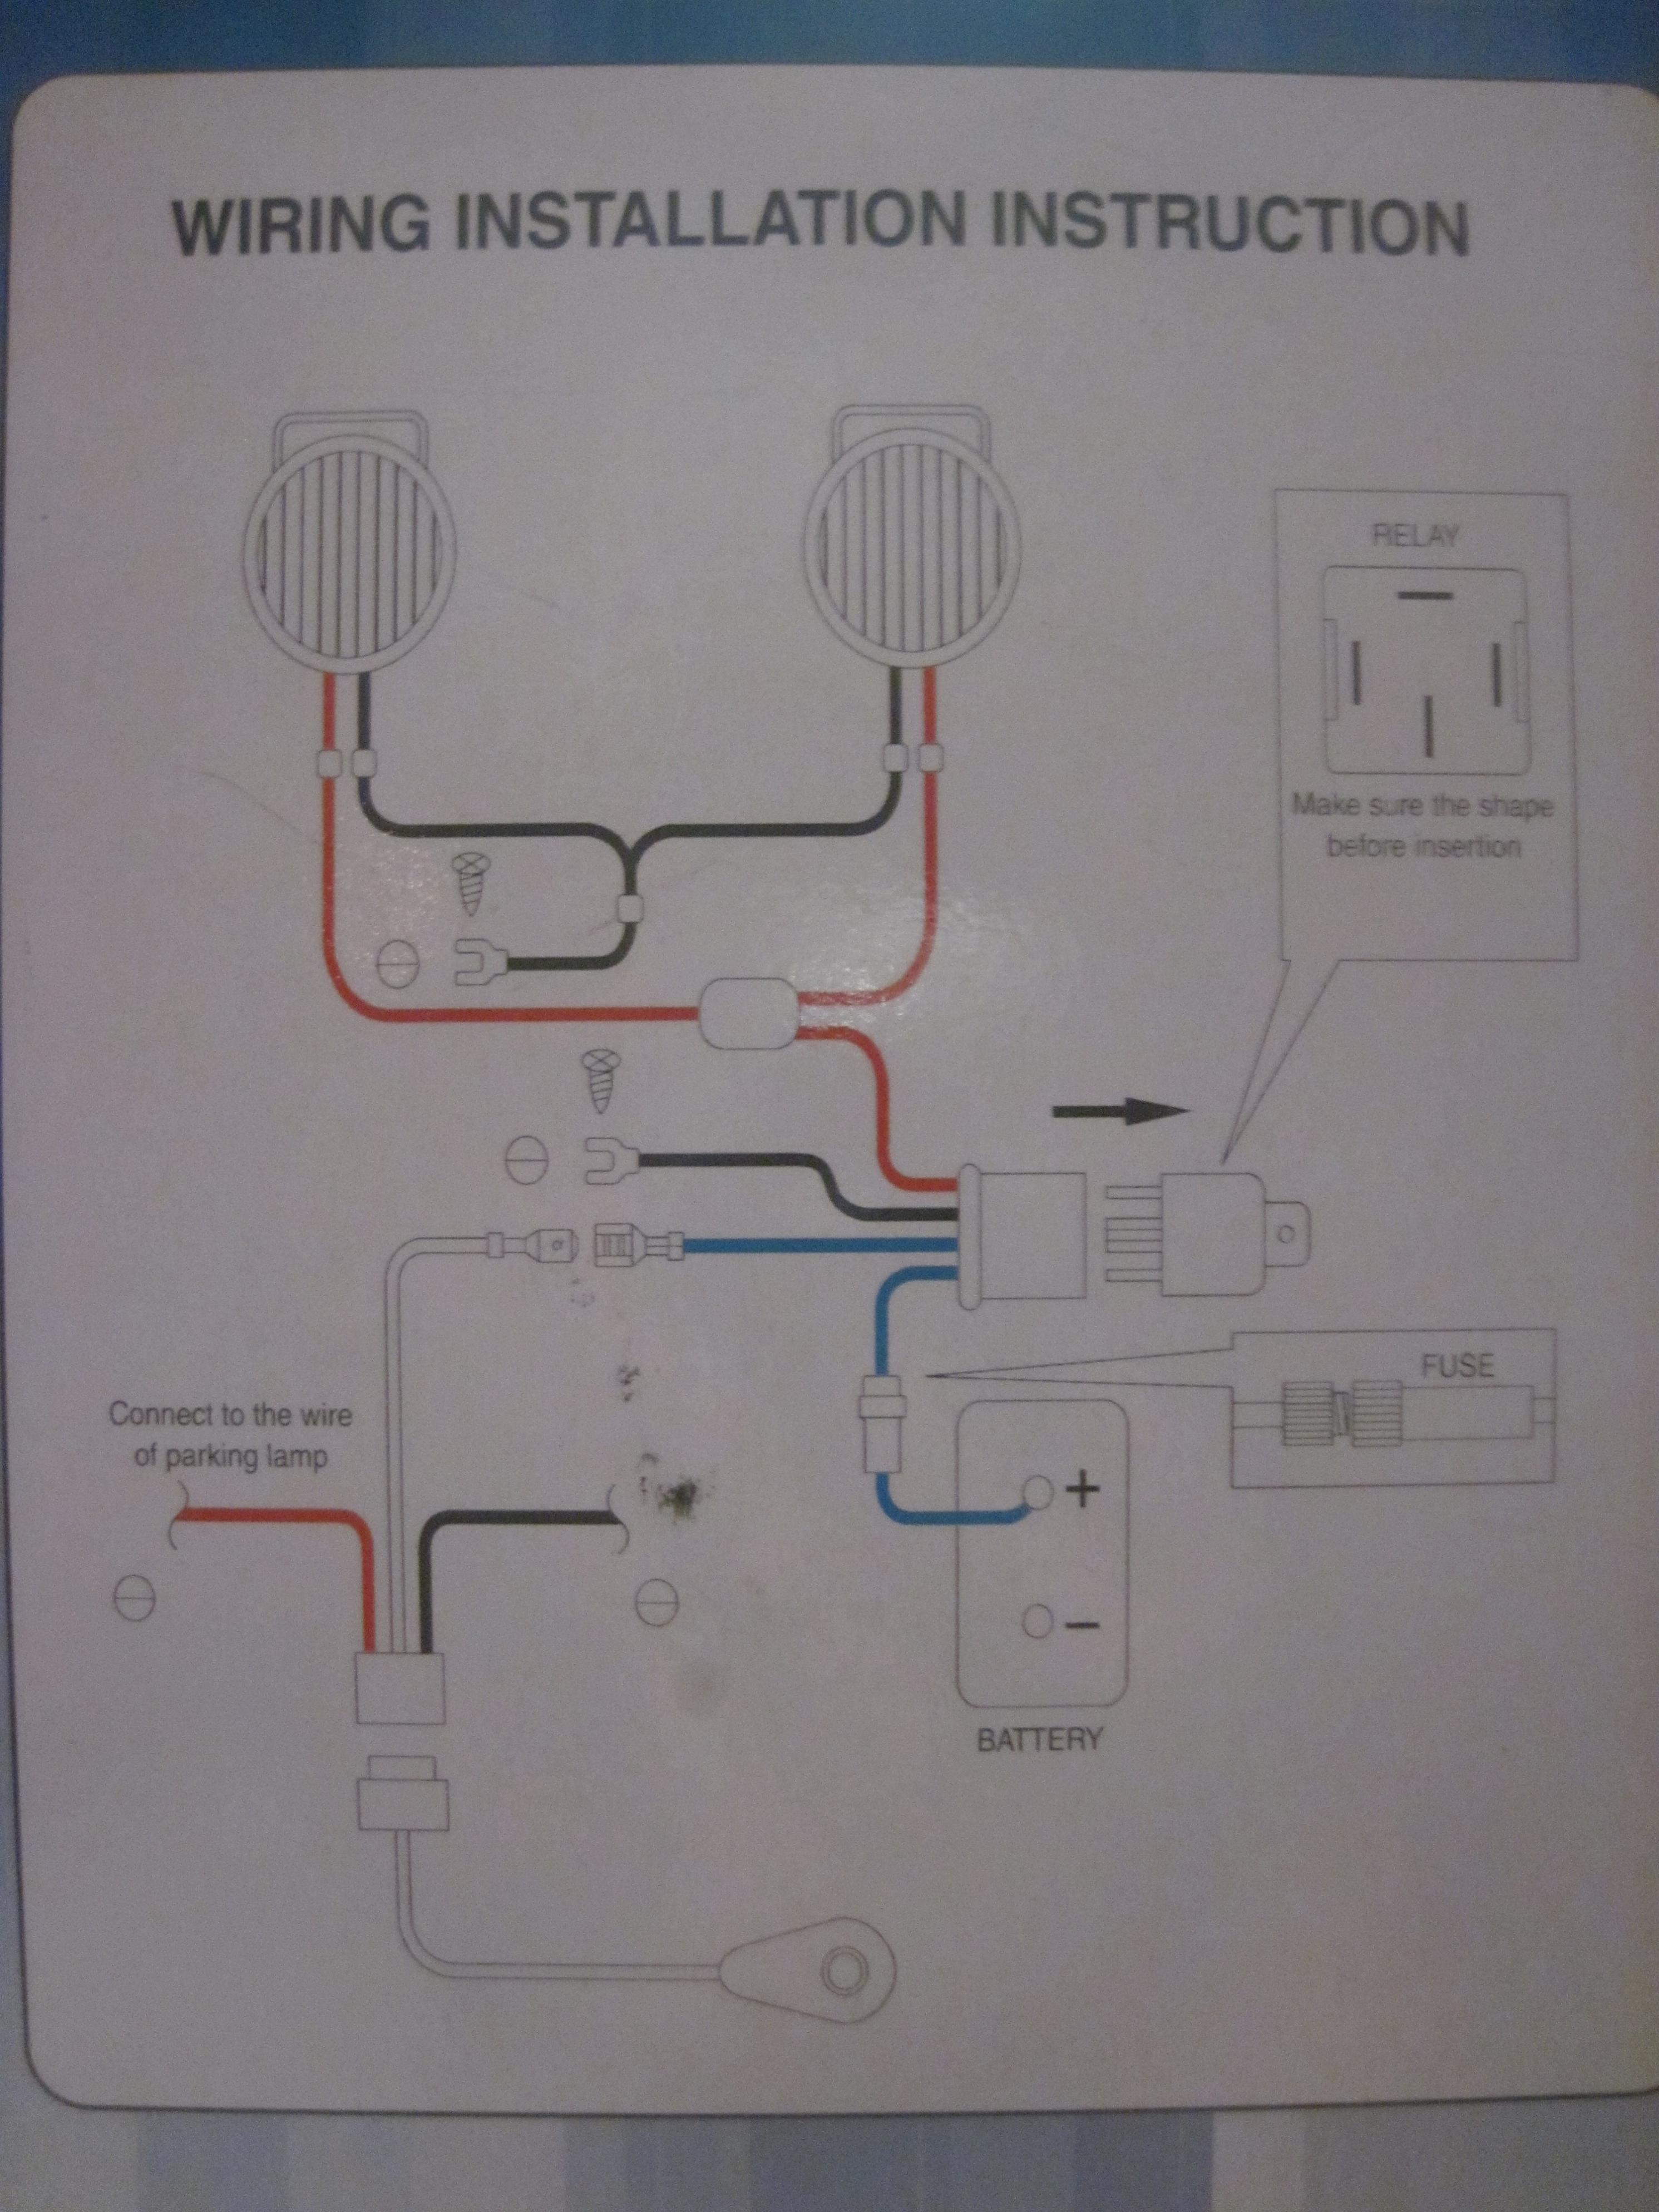 wiring diagram for a boat stereo images auto stereo wiring winch remote wiring diagram t images